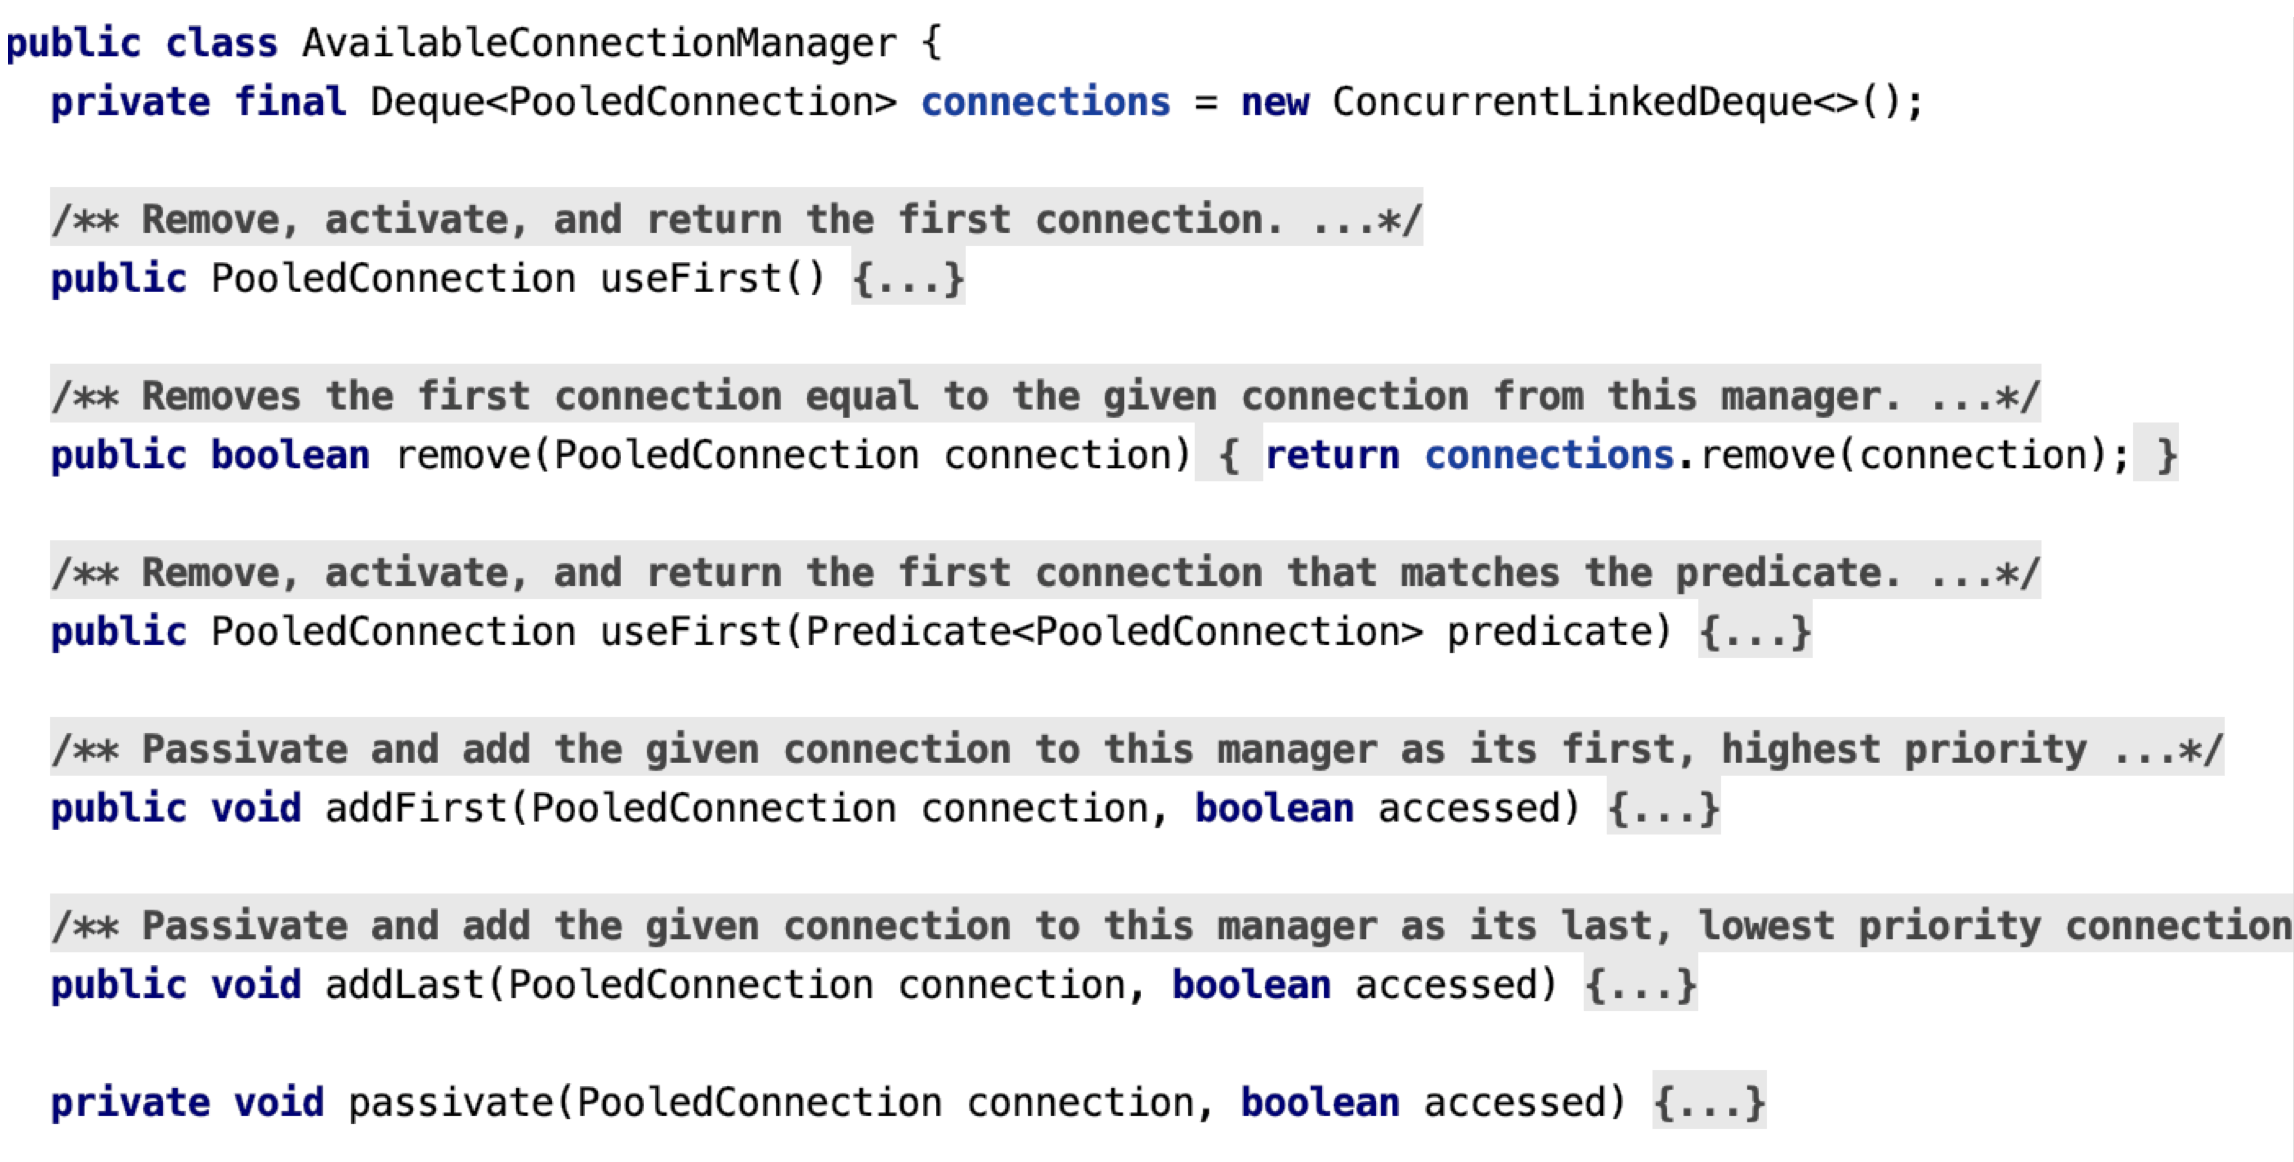 Figure 7: AvailabeConnectionManager, extracted from ConnectionManagerImpl - Code snippet showing the method signatures in the AvailableConnectionManager. These are: public PooledConnection useFirst(); public boolean remove(PooledConnection); public PooledConnection useFirst(Predicate<PooledConnection>); public void addFirst(PooledConnection, boolean); public void addLast(PooledConnection, boolean); private void passivate(PooledConnection, boolean). The class also defines a Deque<PooledConnection> to store the connections.